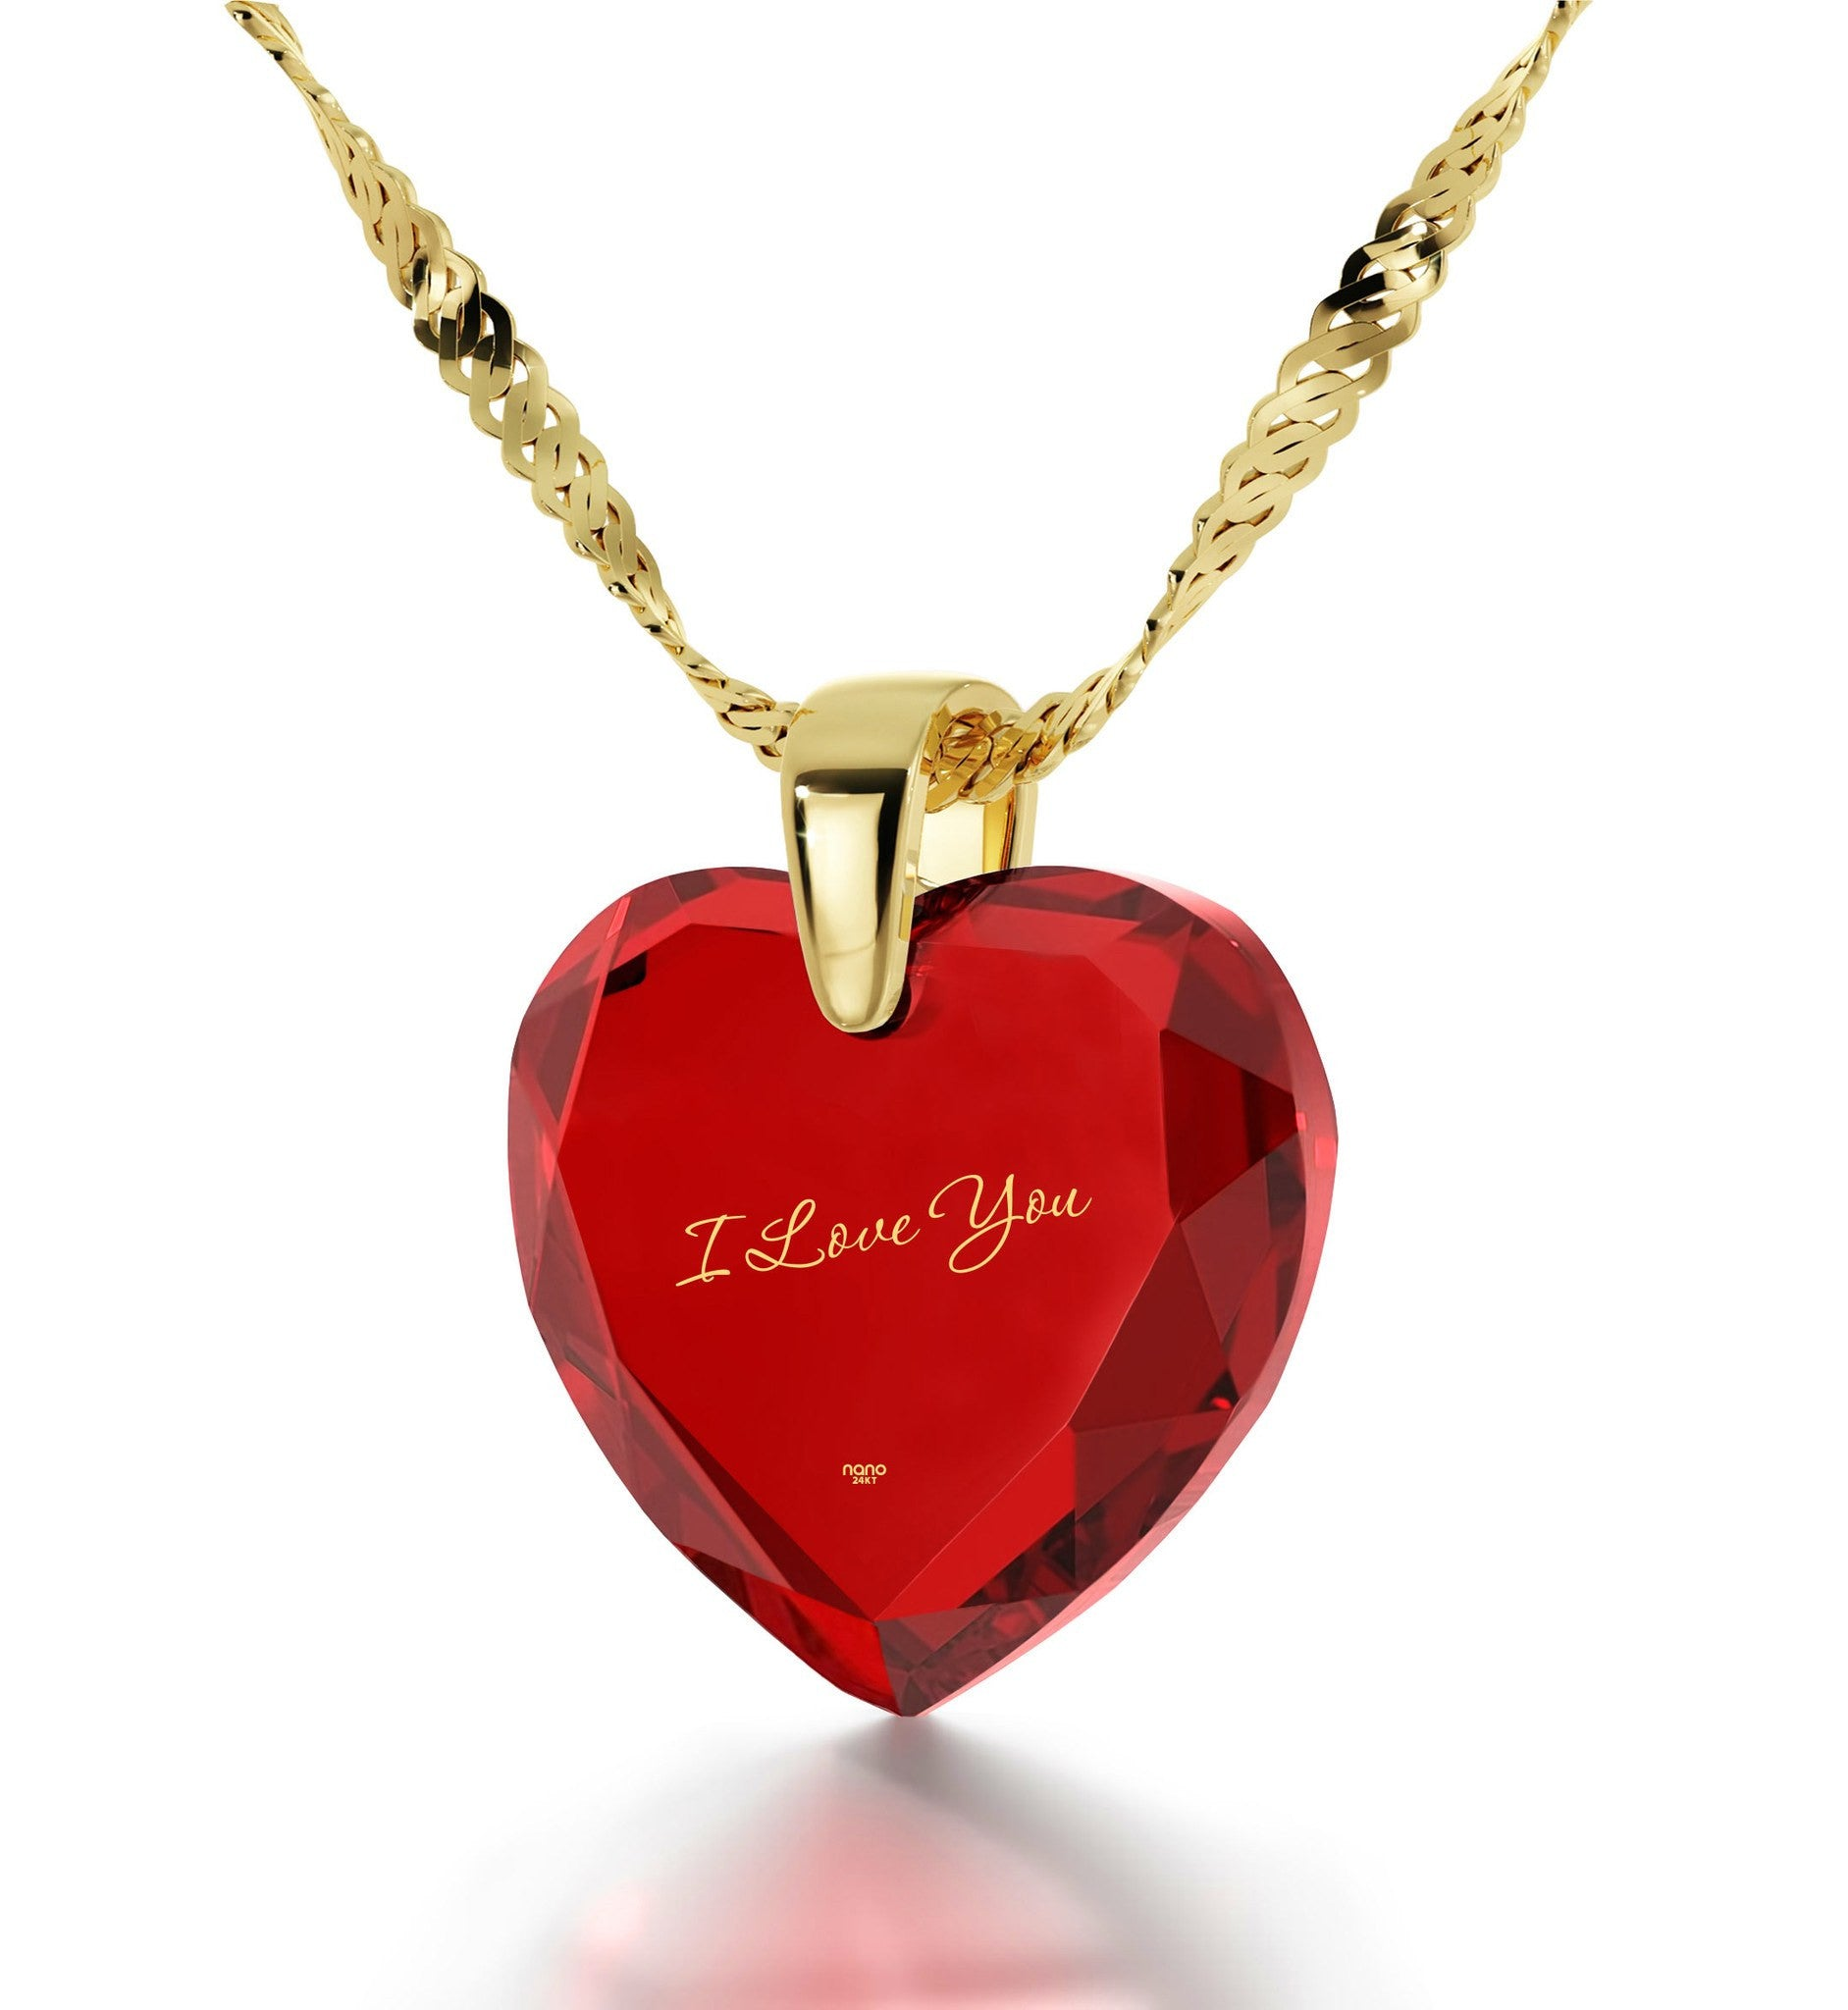 Great Valentines Gifts for Her, Red Heart Jewelry with 14k Gold Chain, Cute Necklaces for Girlfriend